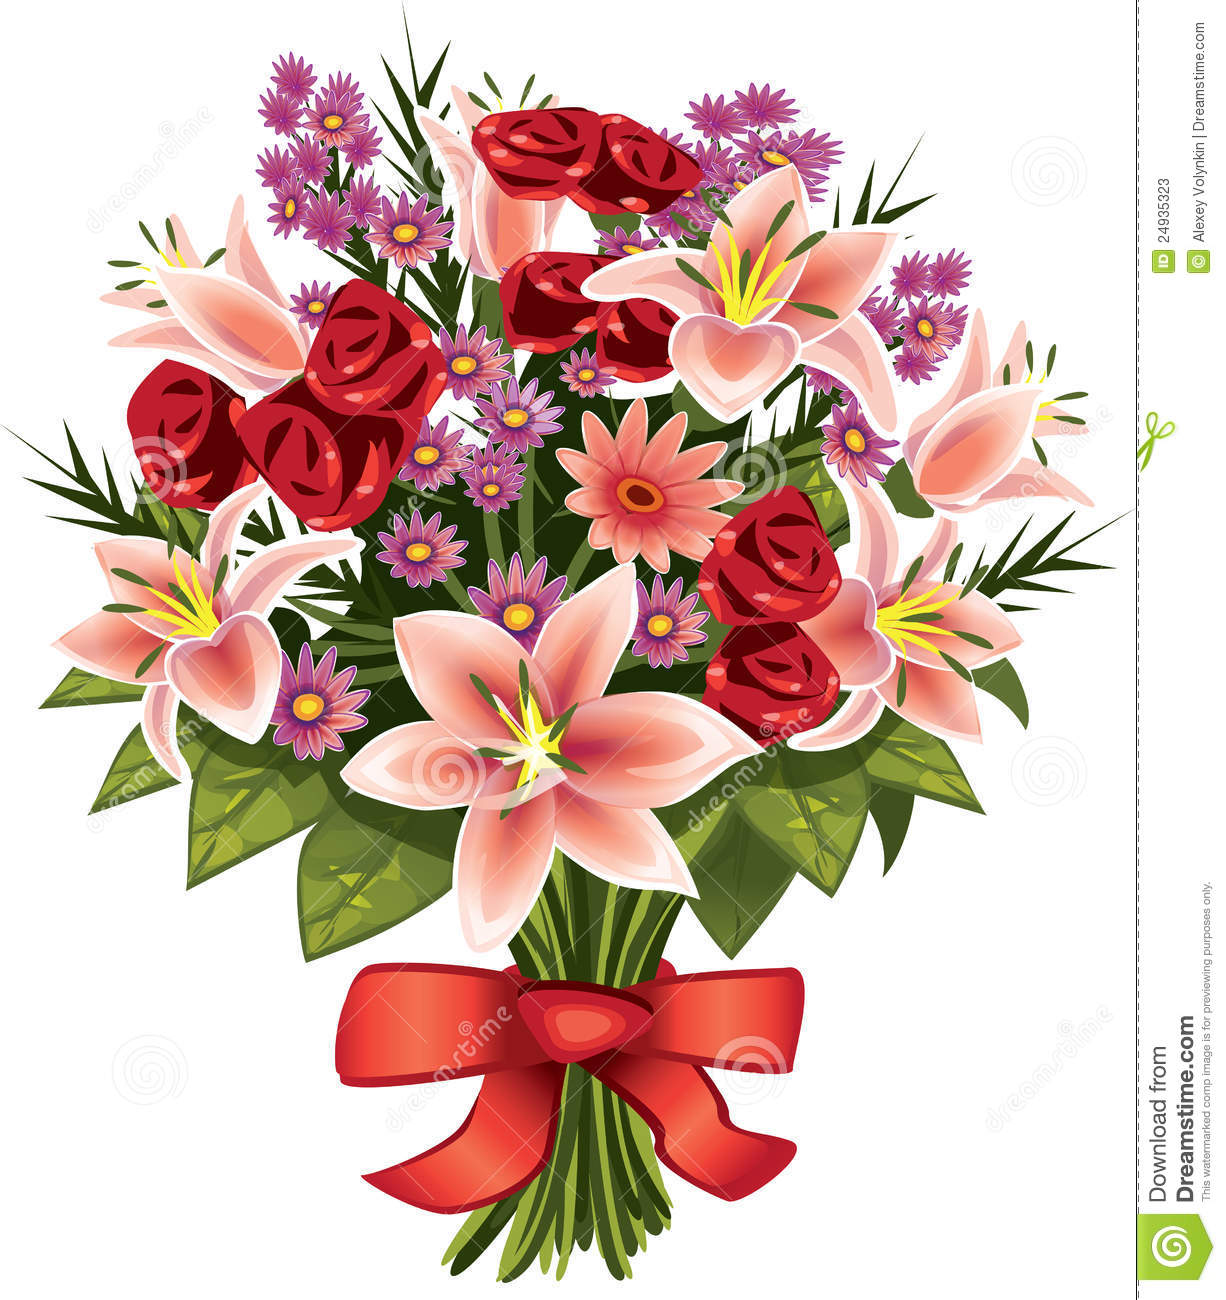 Bouquet of flowers stock illustration illustration of love 24935323 bouquet of flowers izmirmasajfo